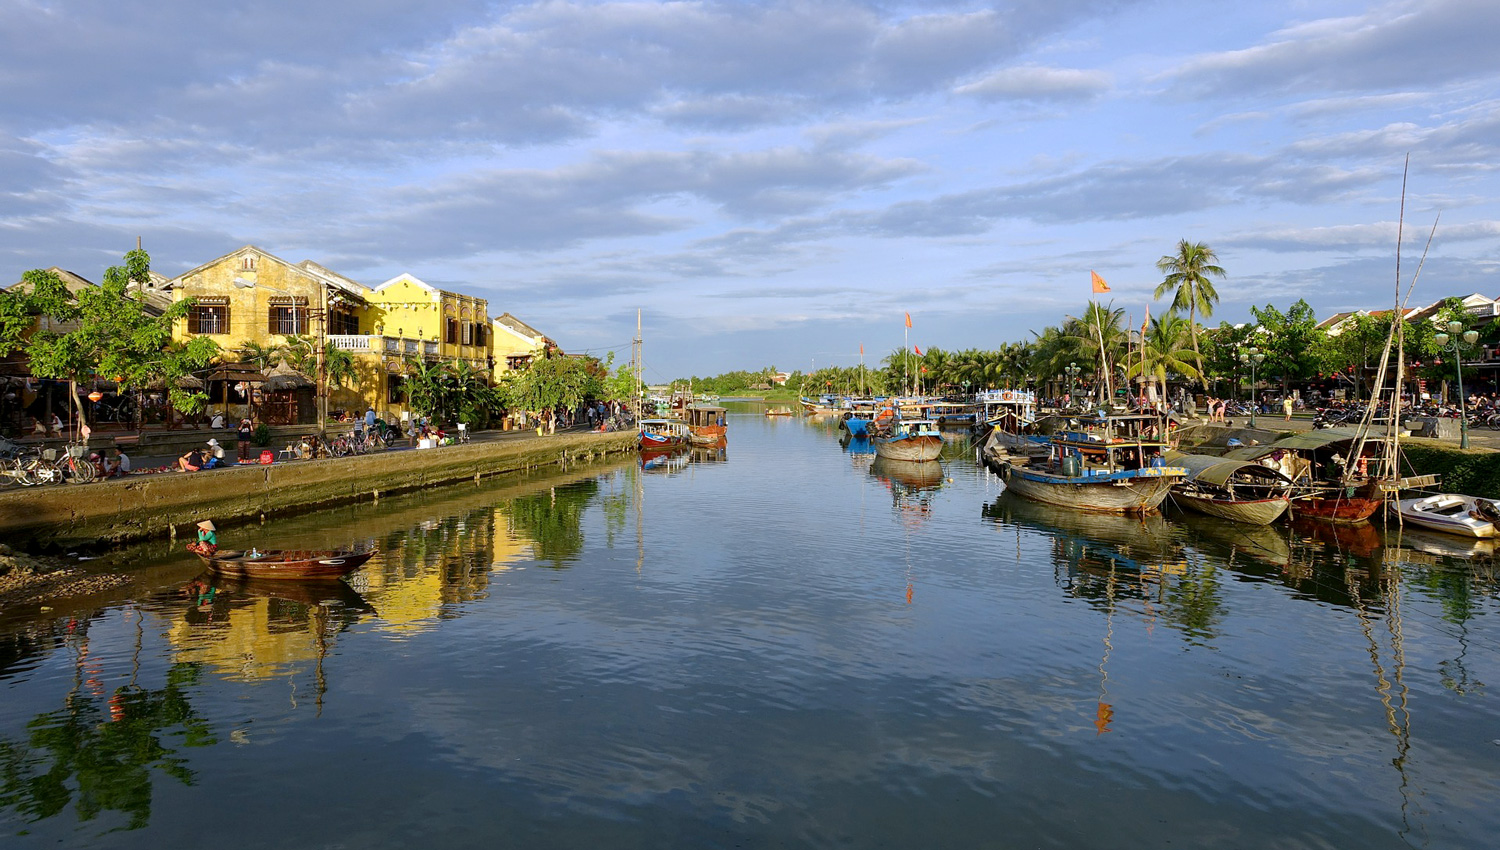 Colonial buildings along the river at Hoi An.   Image:   Kl Kim